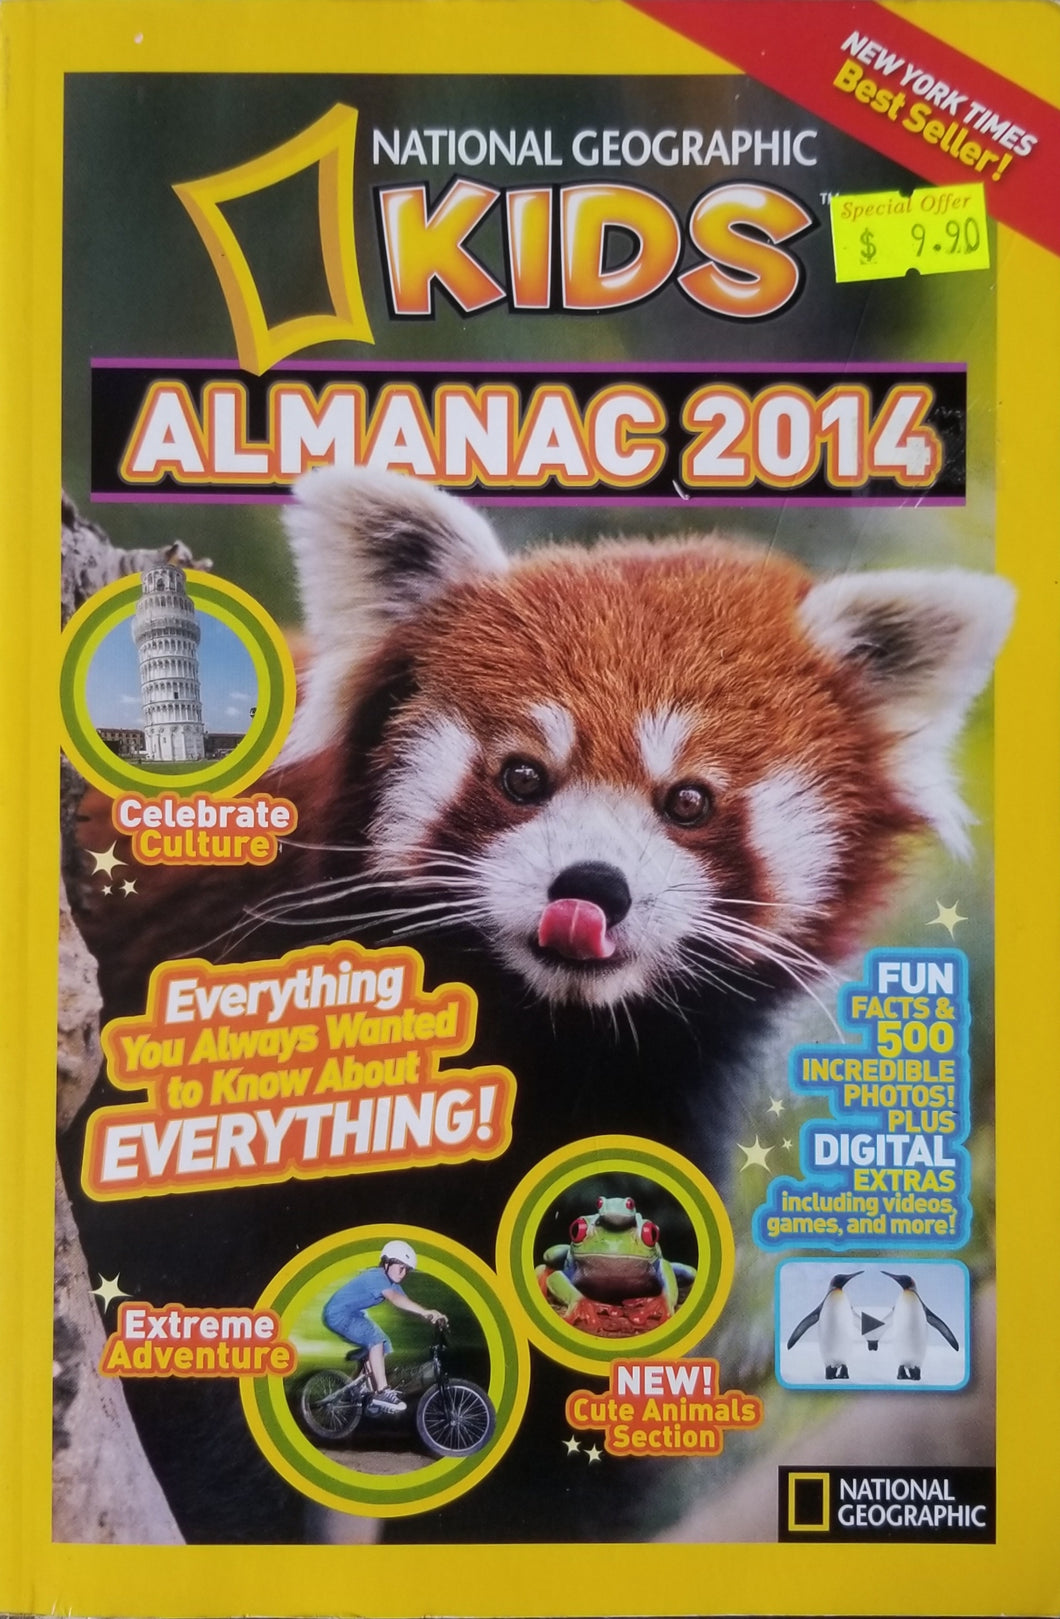 National Geographic Kids Almanac 2014  International Edition - National Geographic